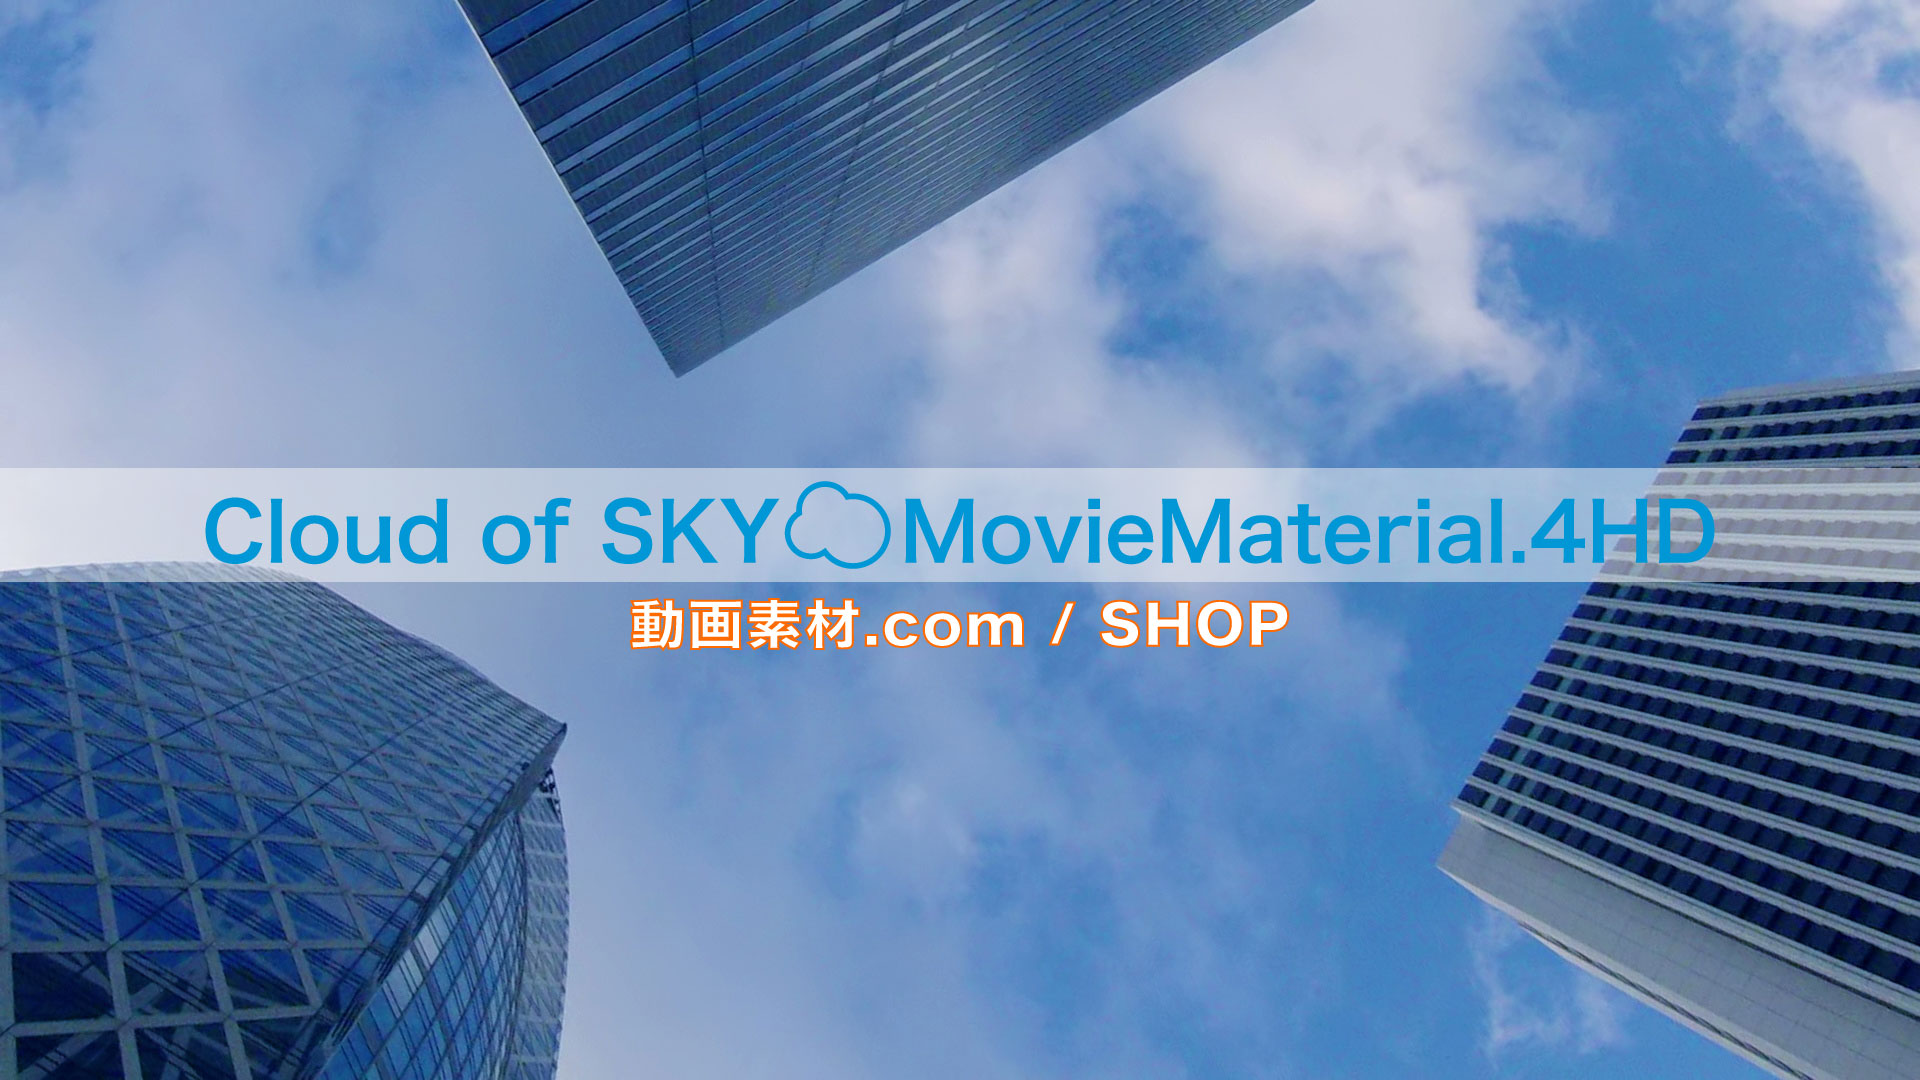 【Cloud of SKY MovieMaterial.4HD】ロイヤリティフリー フルハイビジョン空と雲の動画素材集 Image.1